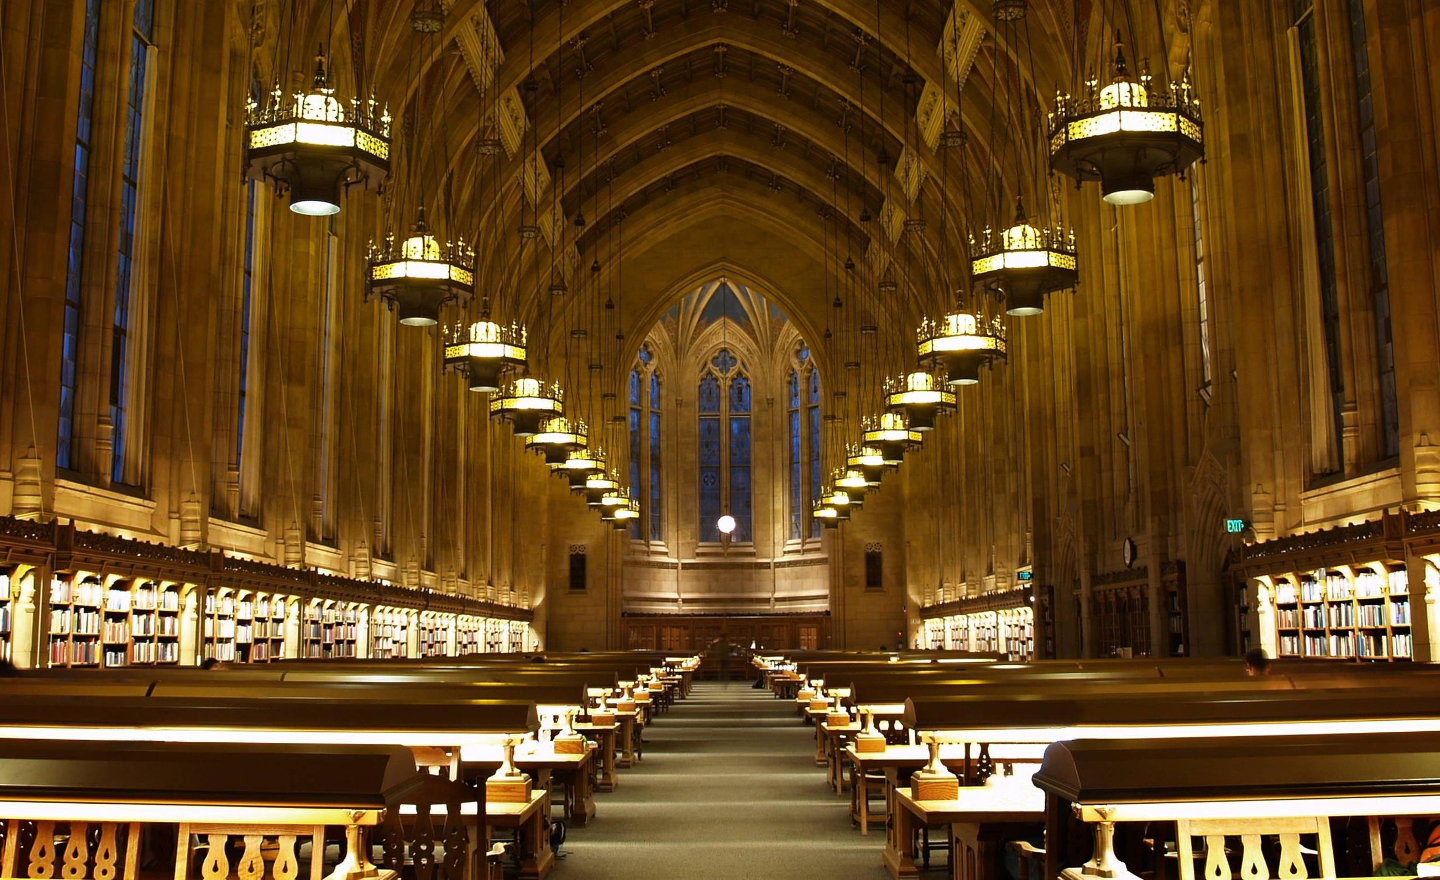 Suzzallo Library reading room at the University of Washington, Seattle